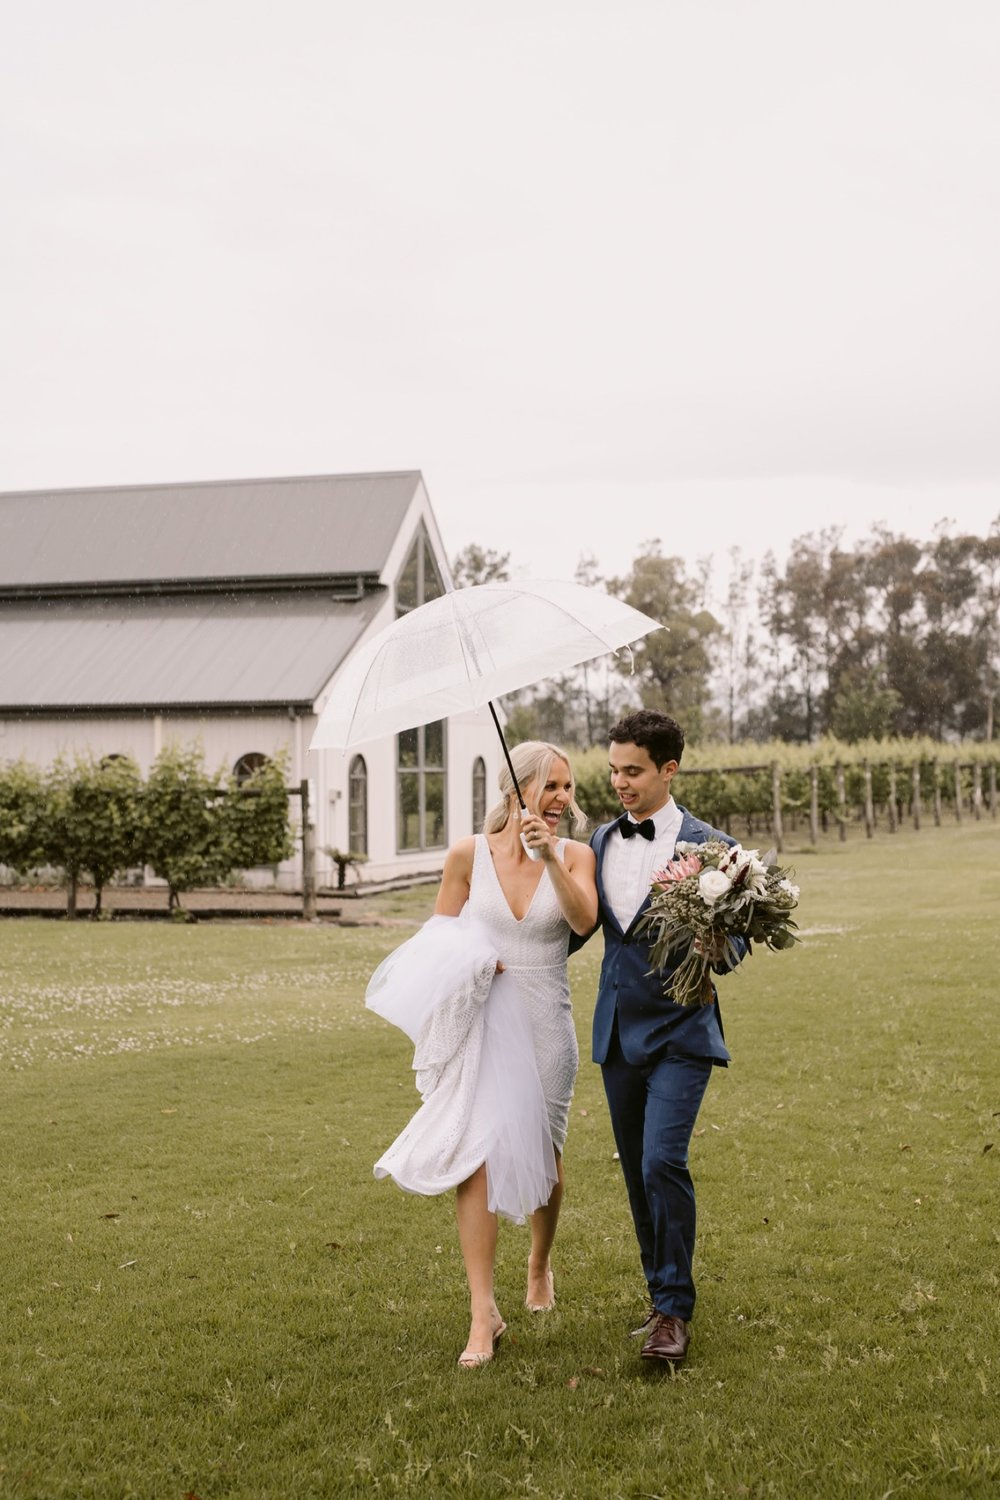 Immerse Yarra Valley Winery Wedding Photography90.jpg